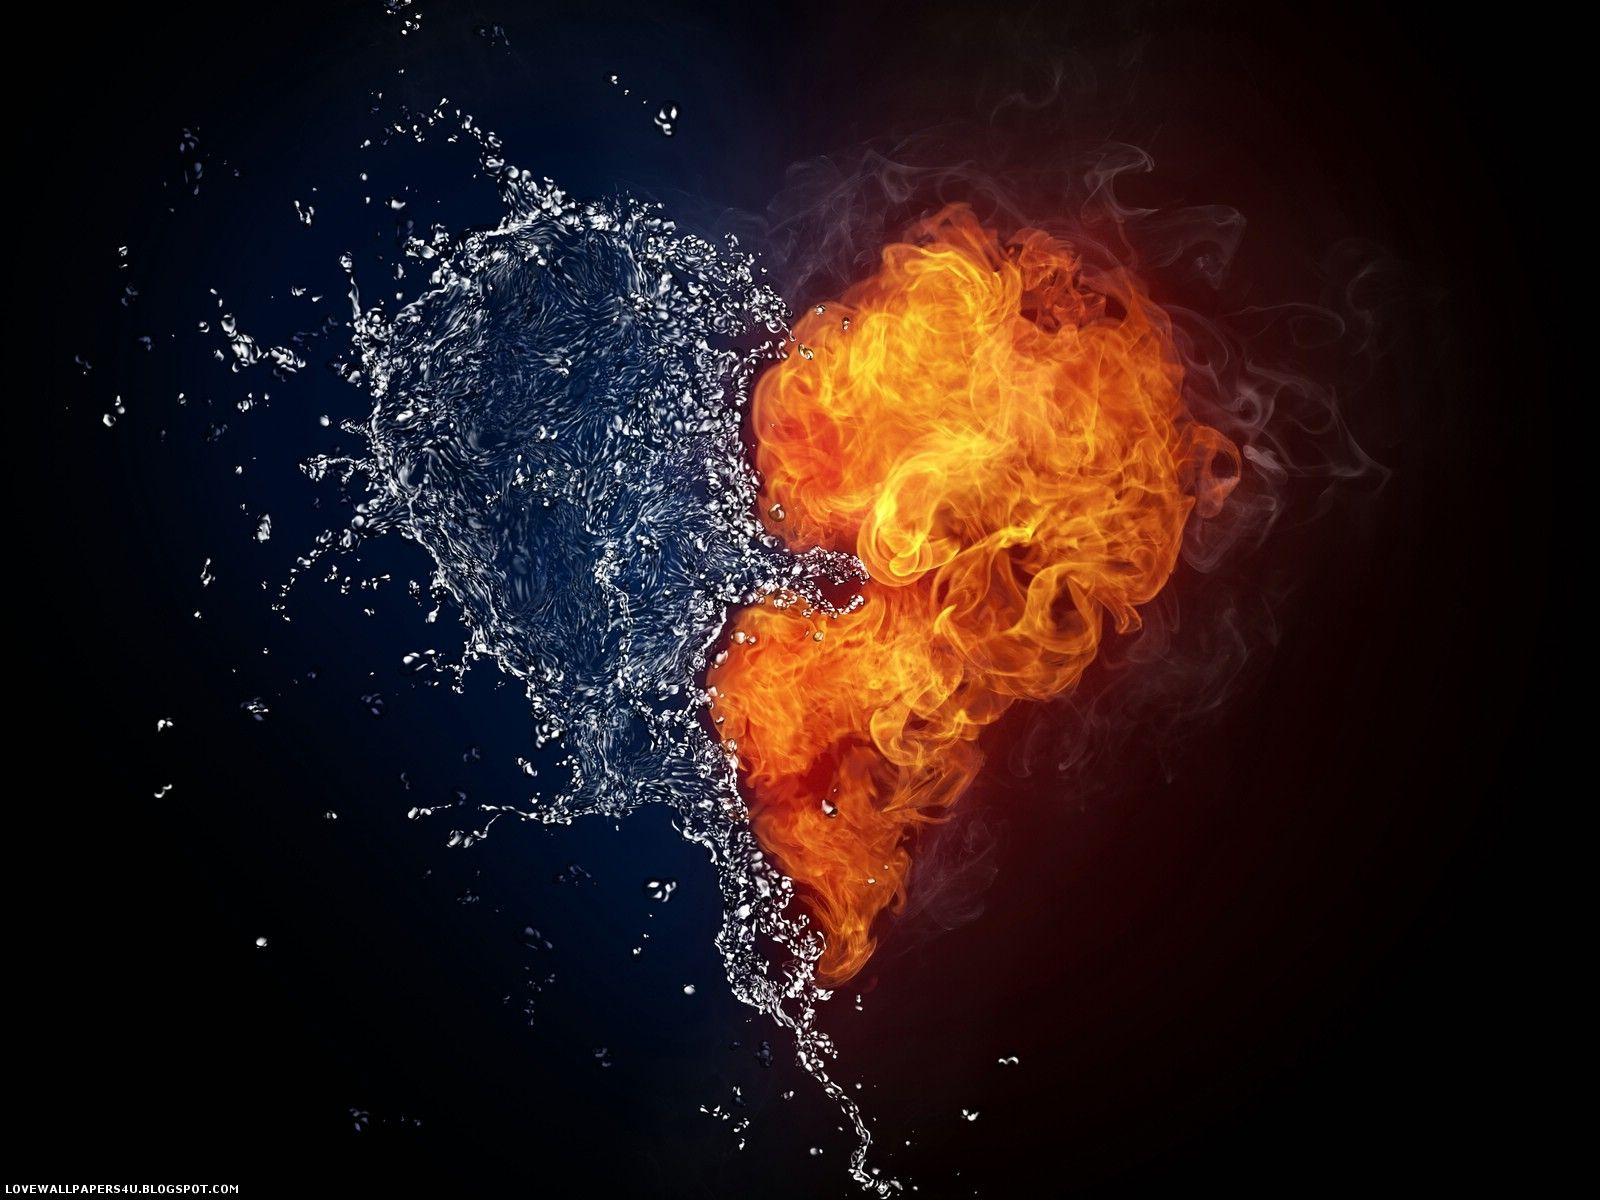 images of water and fire love wallpapers romantic stock wallpaper